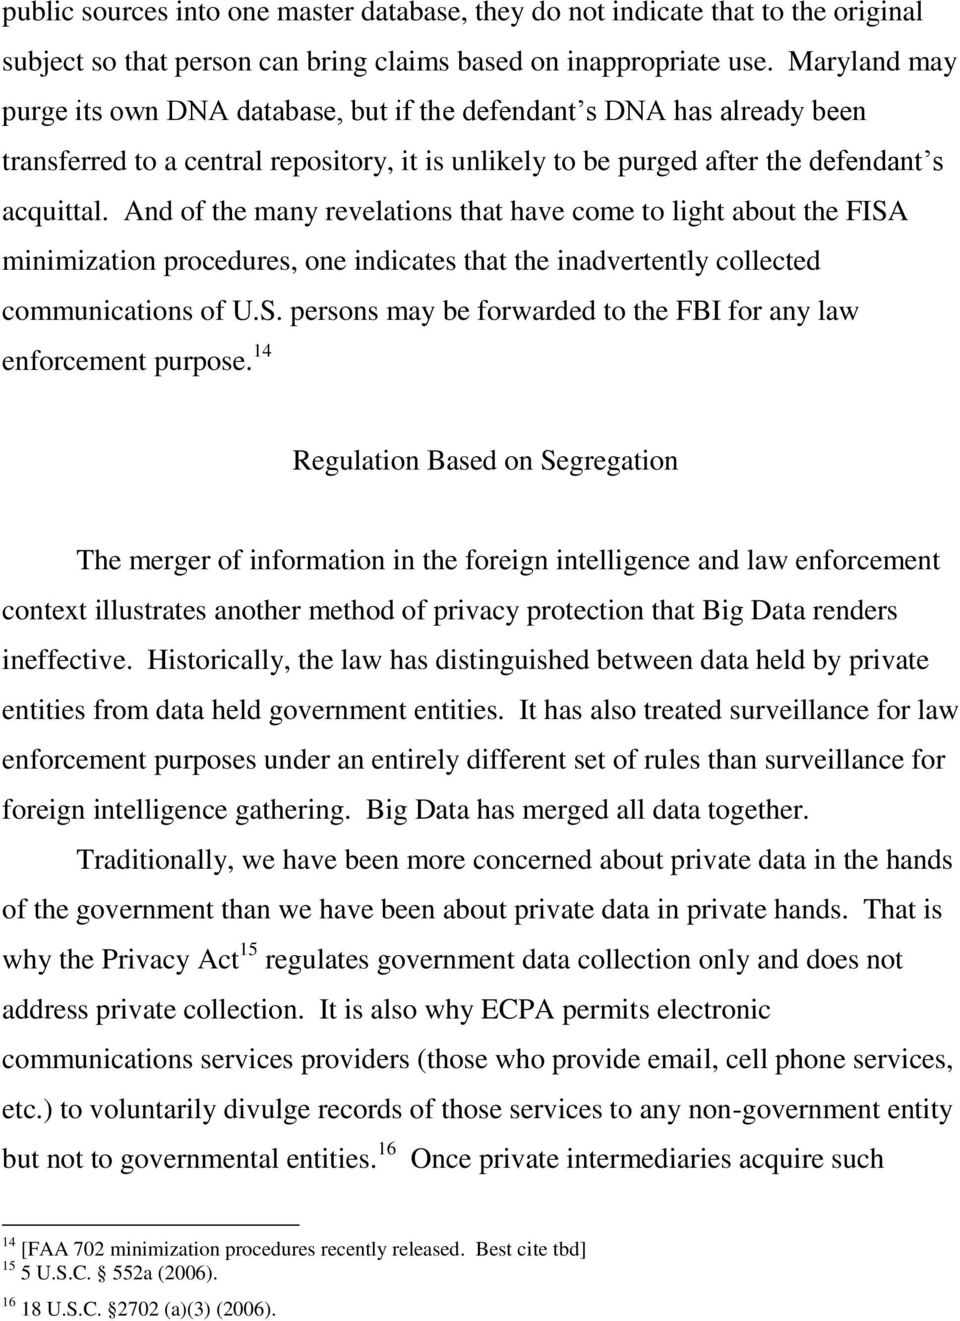 And of the many revelations that have come to light about the FISA minimization procedures, one indicates that the inadvertently collected communications of U.S. persons may be forwarded to the FBI for any law enforcement purpose.